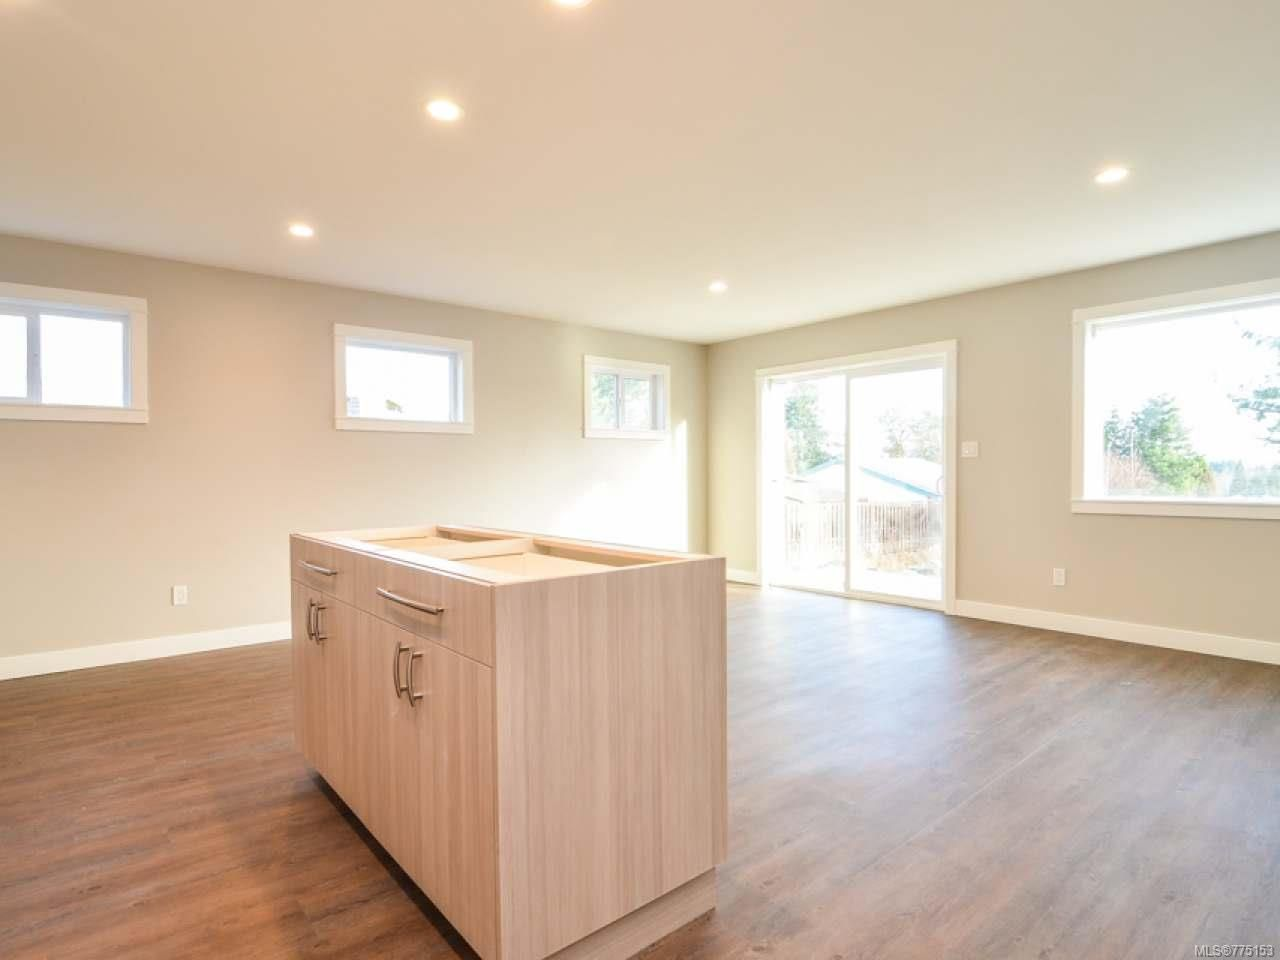 Photo 6: Photos: 2 595 Petersen Rd in CAMPBELL RIVER: CR Campbell River West Half Duplex for sale (Campbell River)  : MLS®# 775153